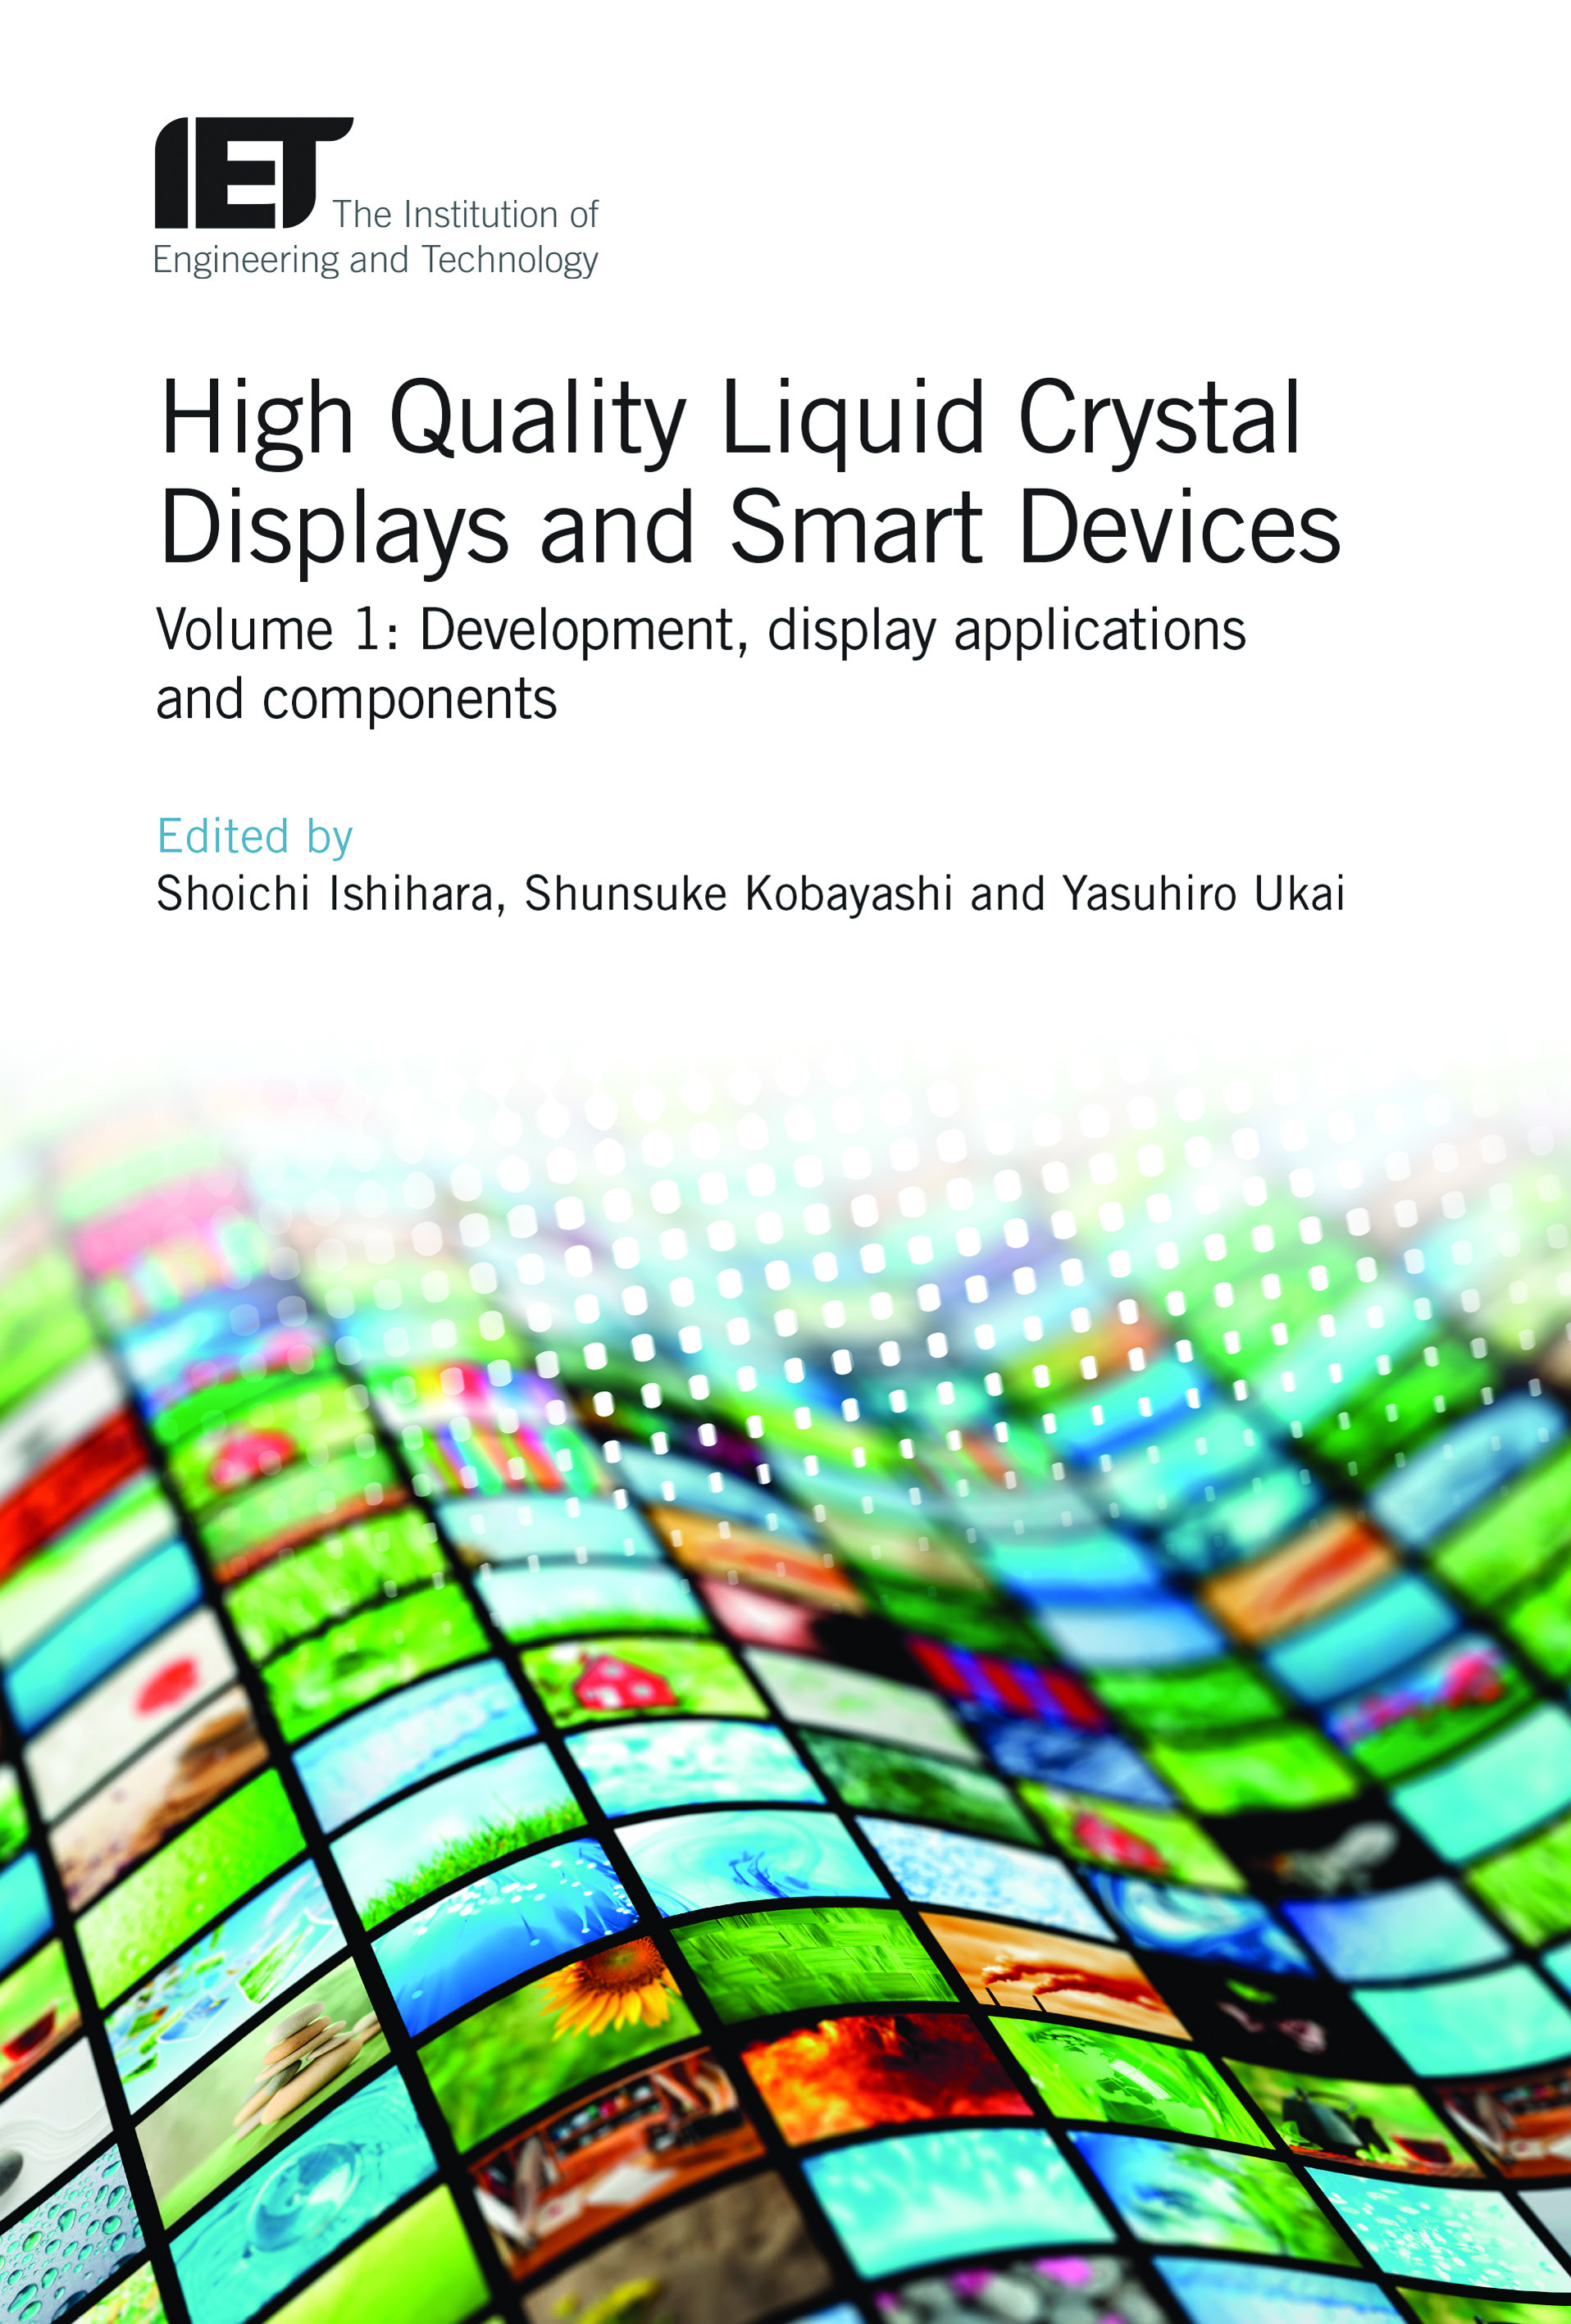 High Quality Liquid Crystal Displays and Smart Devices, Volume 1: Development, display applications and components